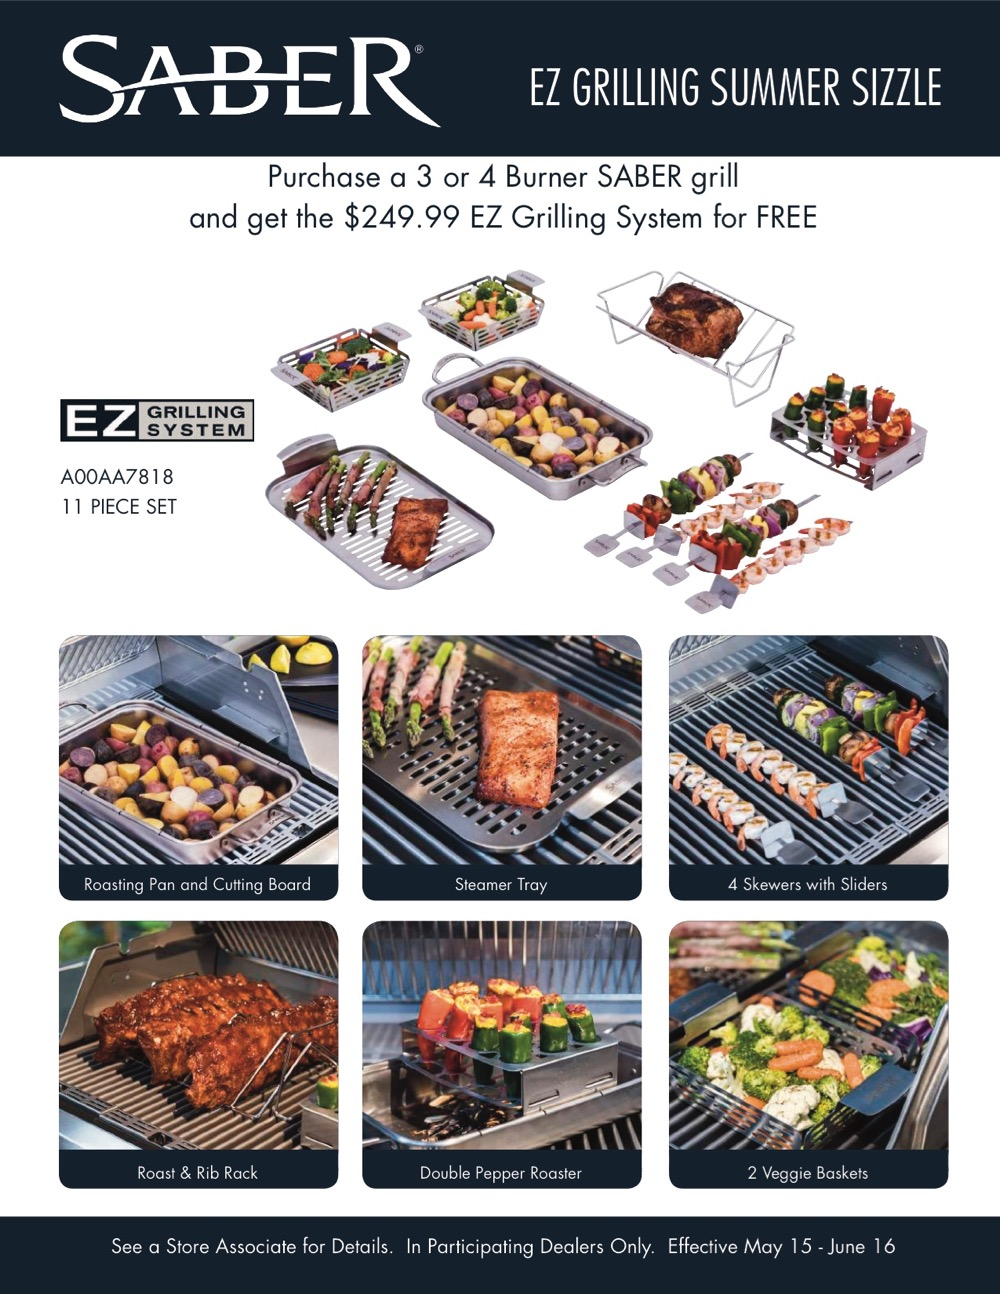 Woodstove Fireplace and Patio Shop - Saber Grill Promo